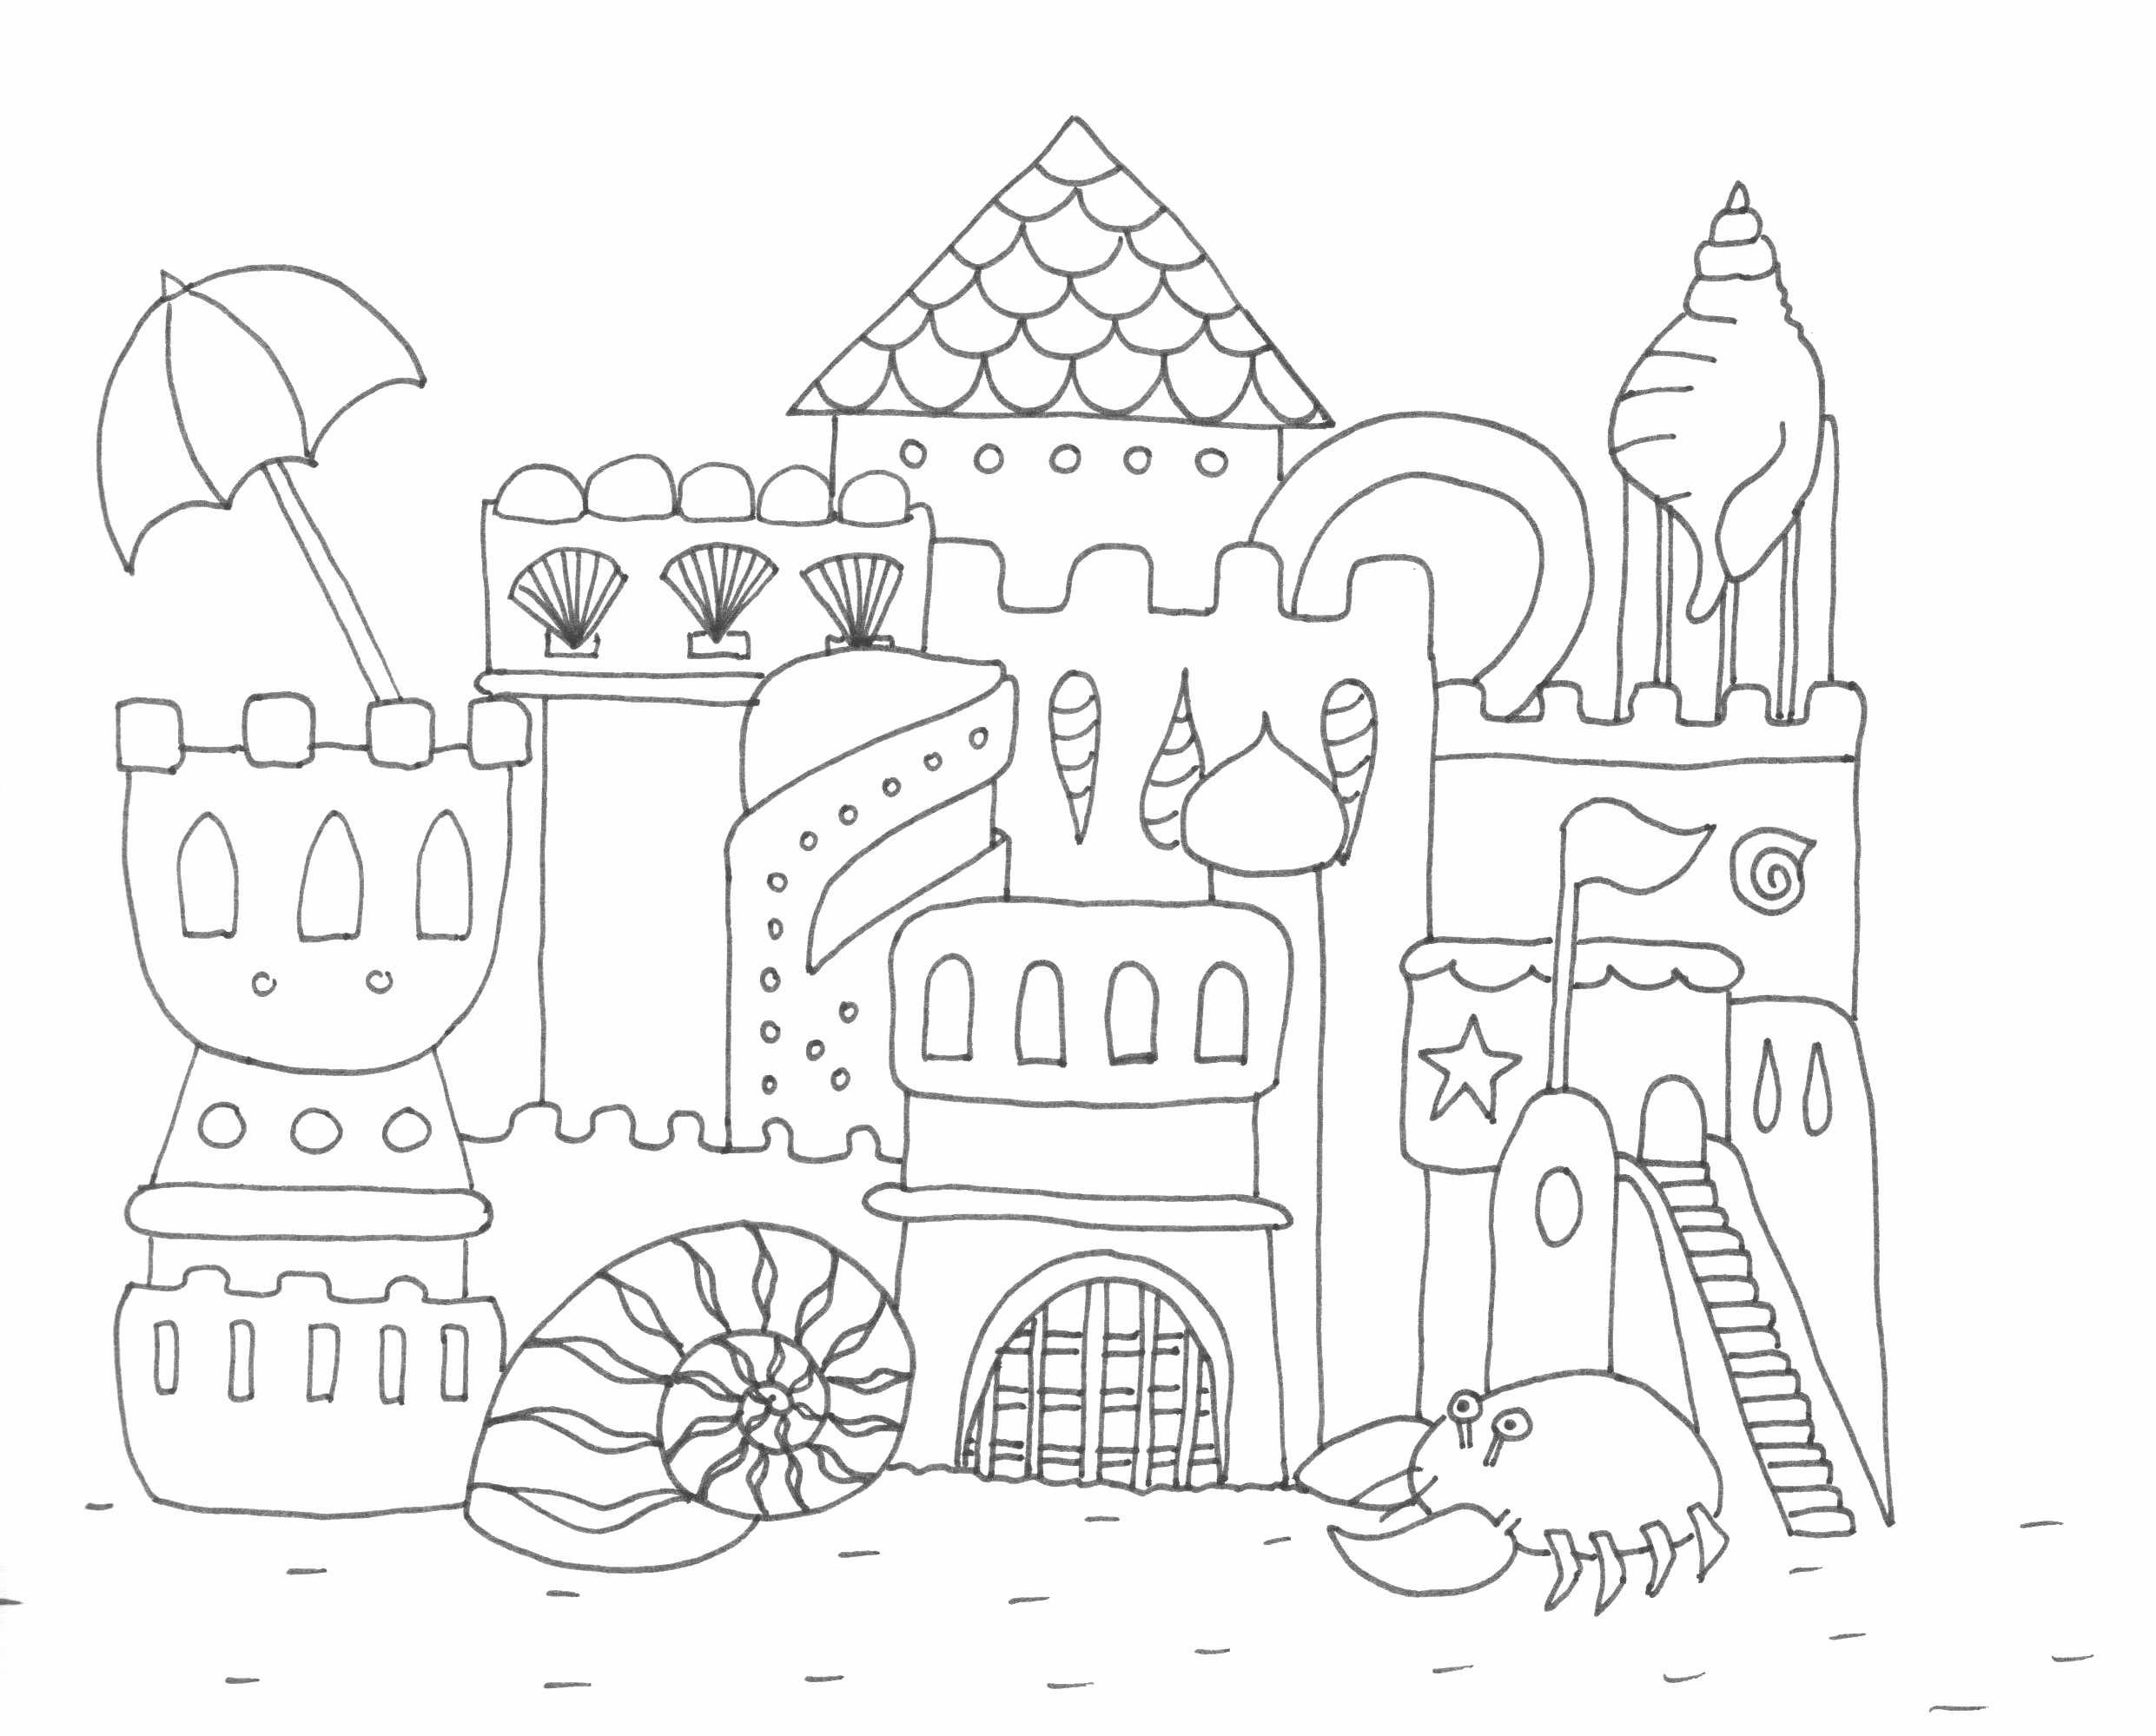 sand castle coloring pictures creating sand castle on beach at summer coloring picture pictures coloring castle sand